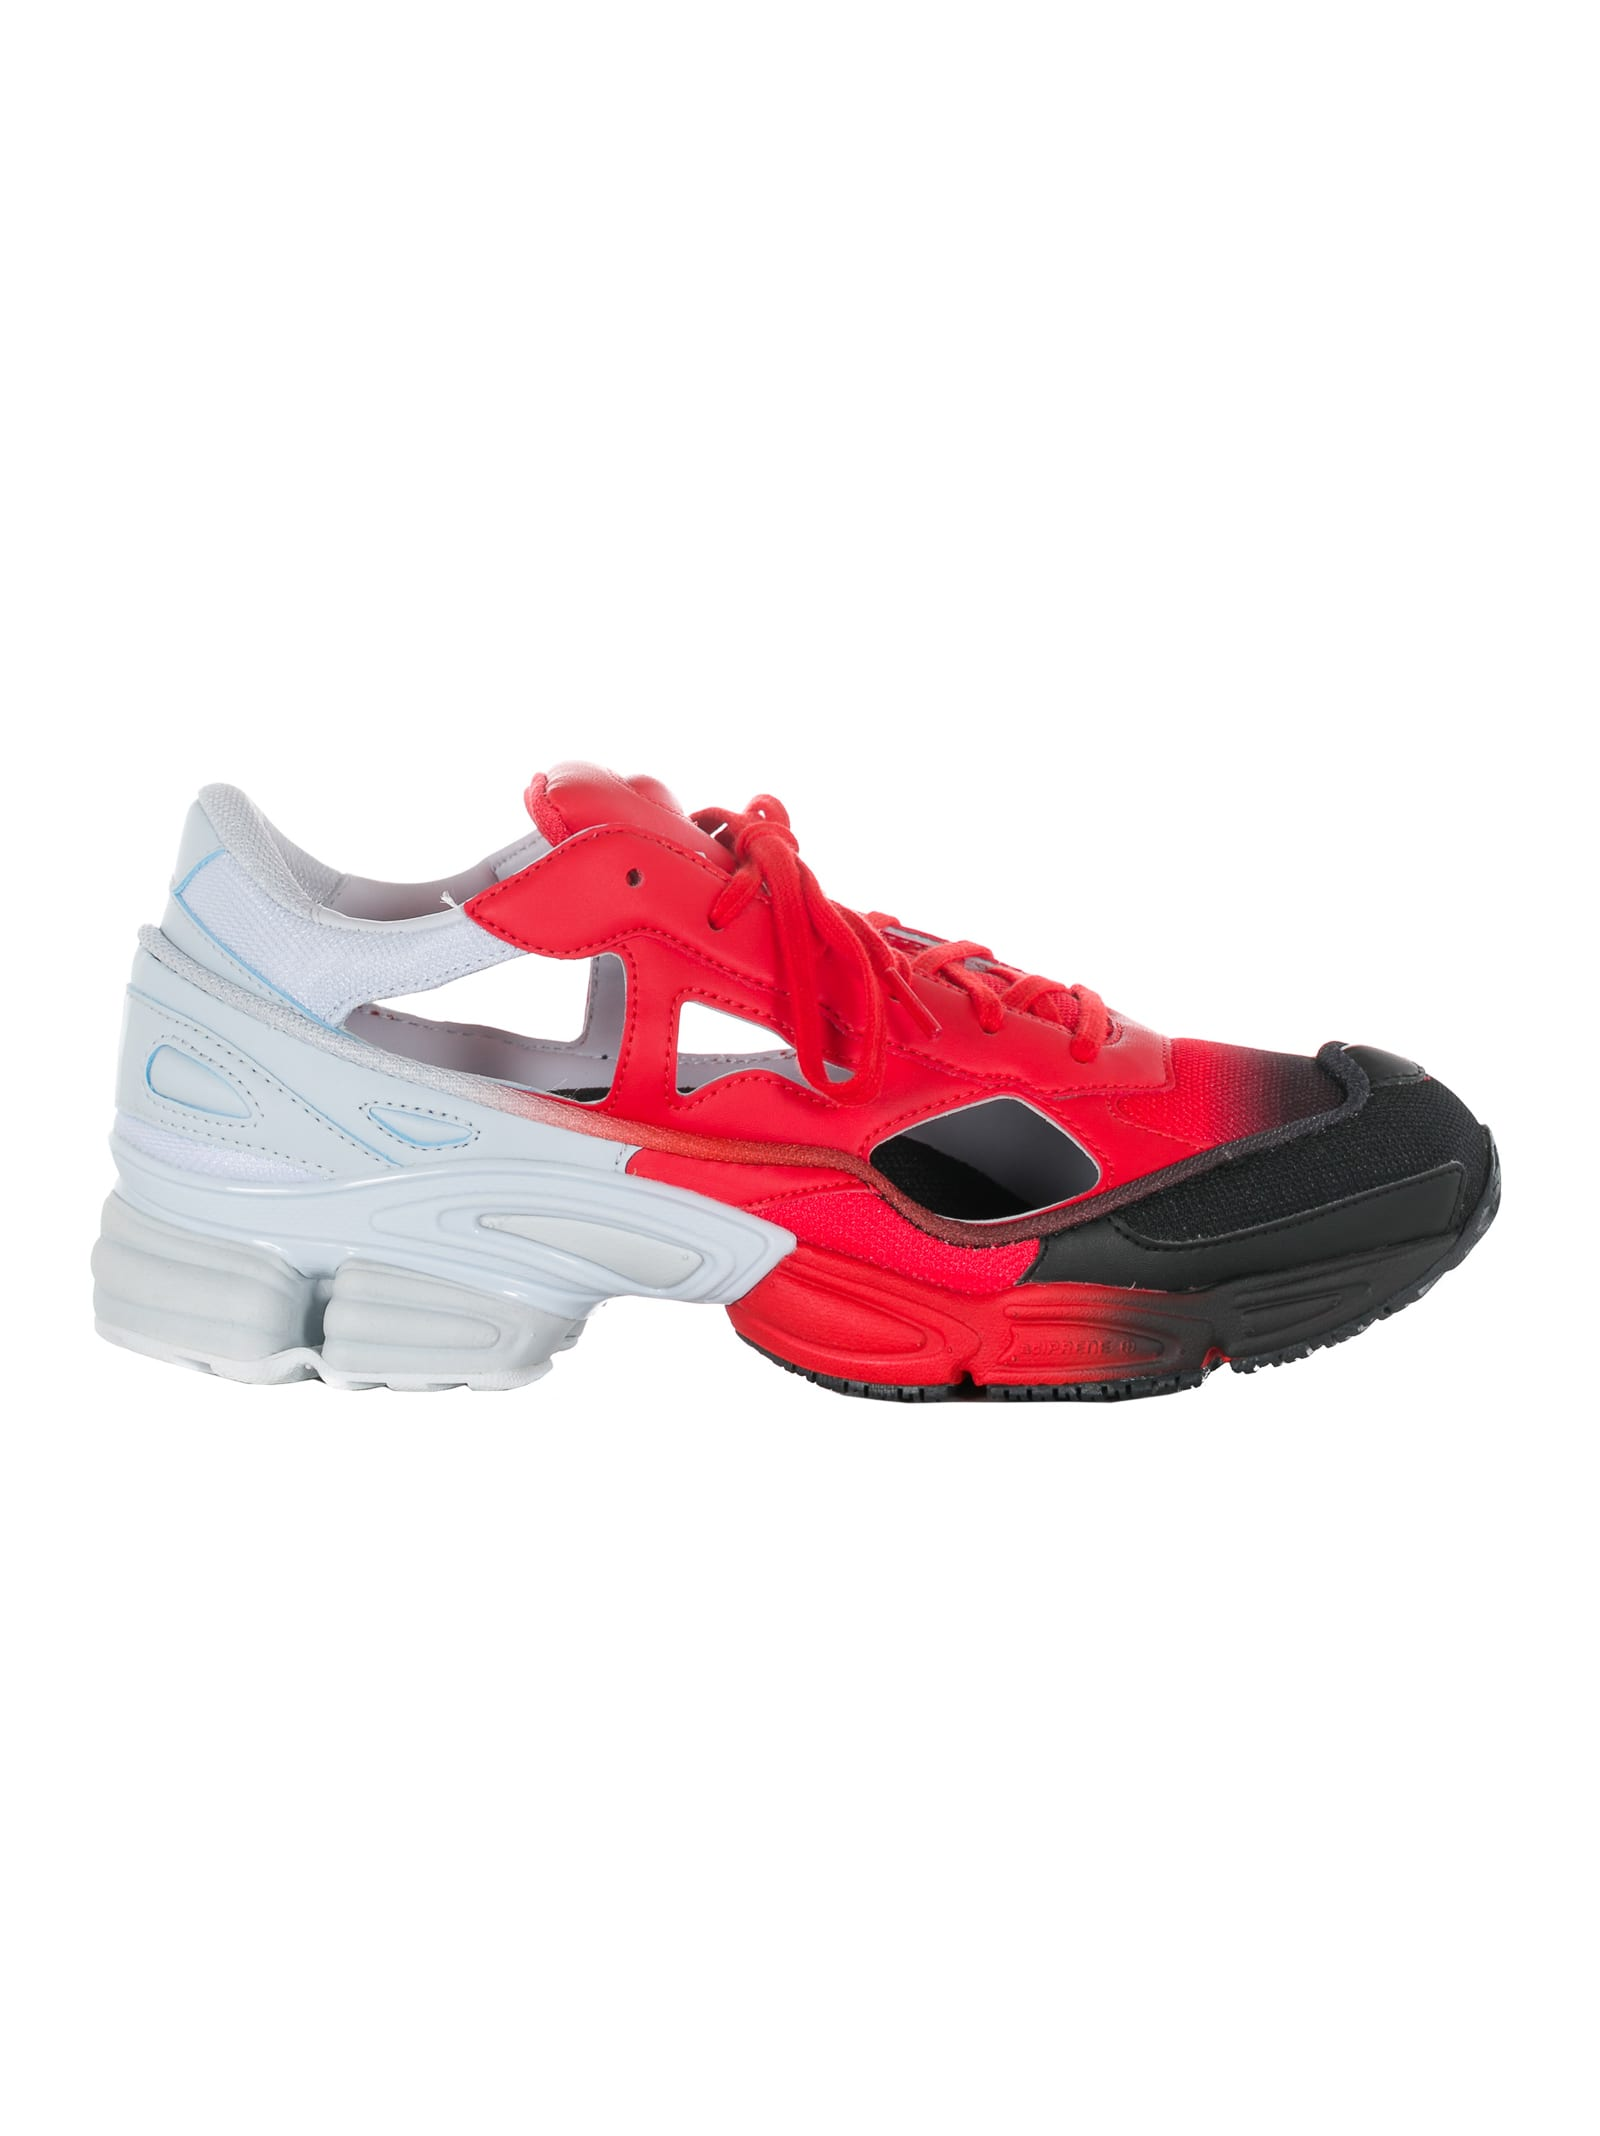 premium selection 66e5e 036a7 Best price on the market at italist | Adidas By Raf Simons Adidas By Raf  Simons Ozweego Sneakers